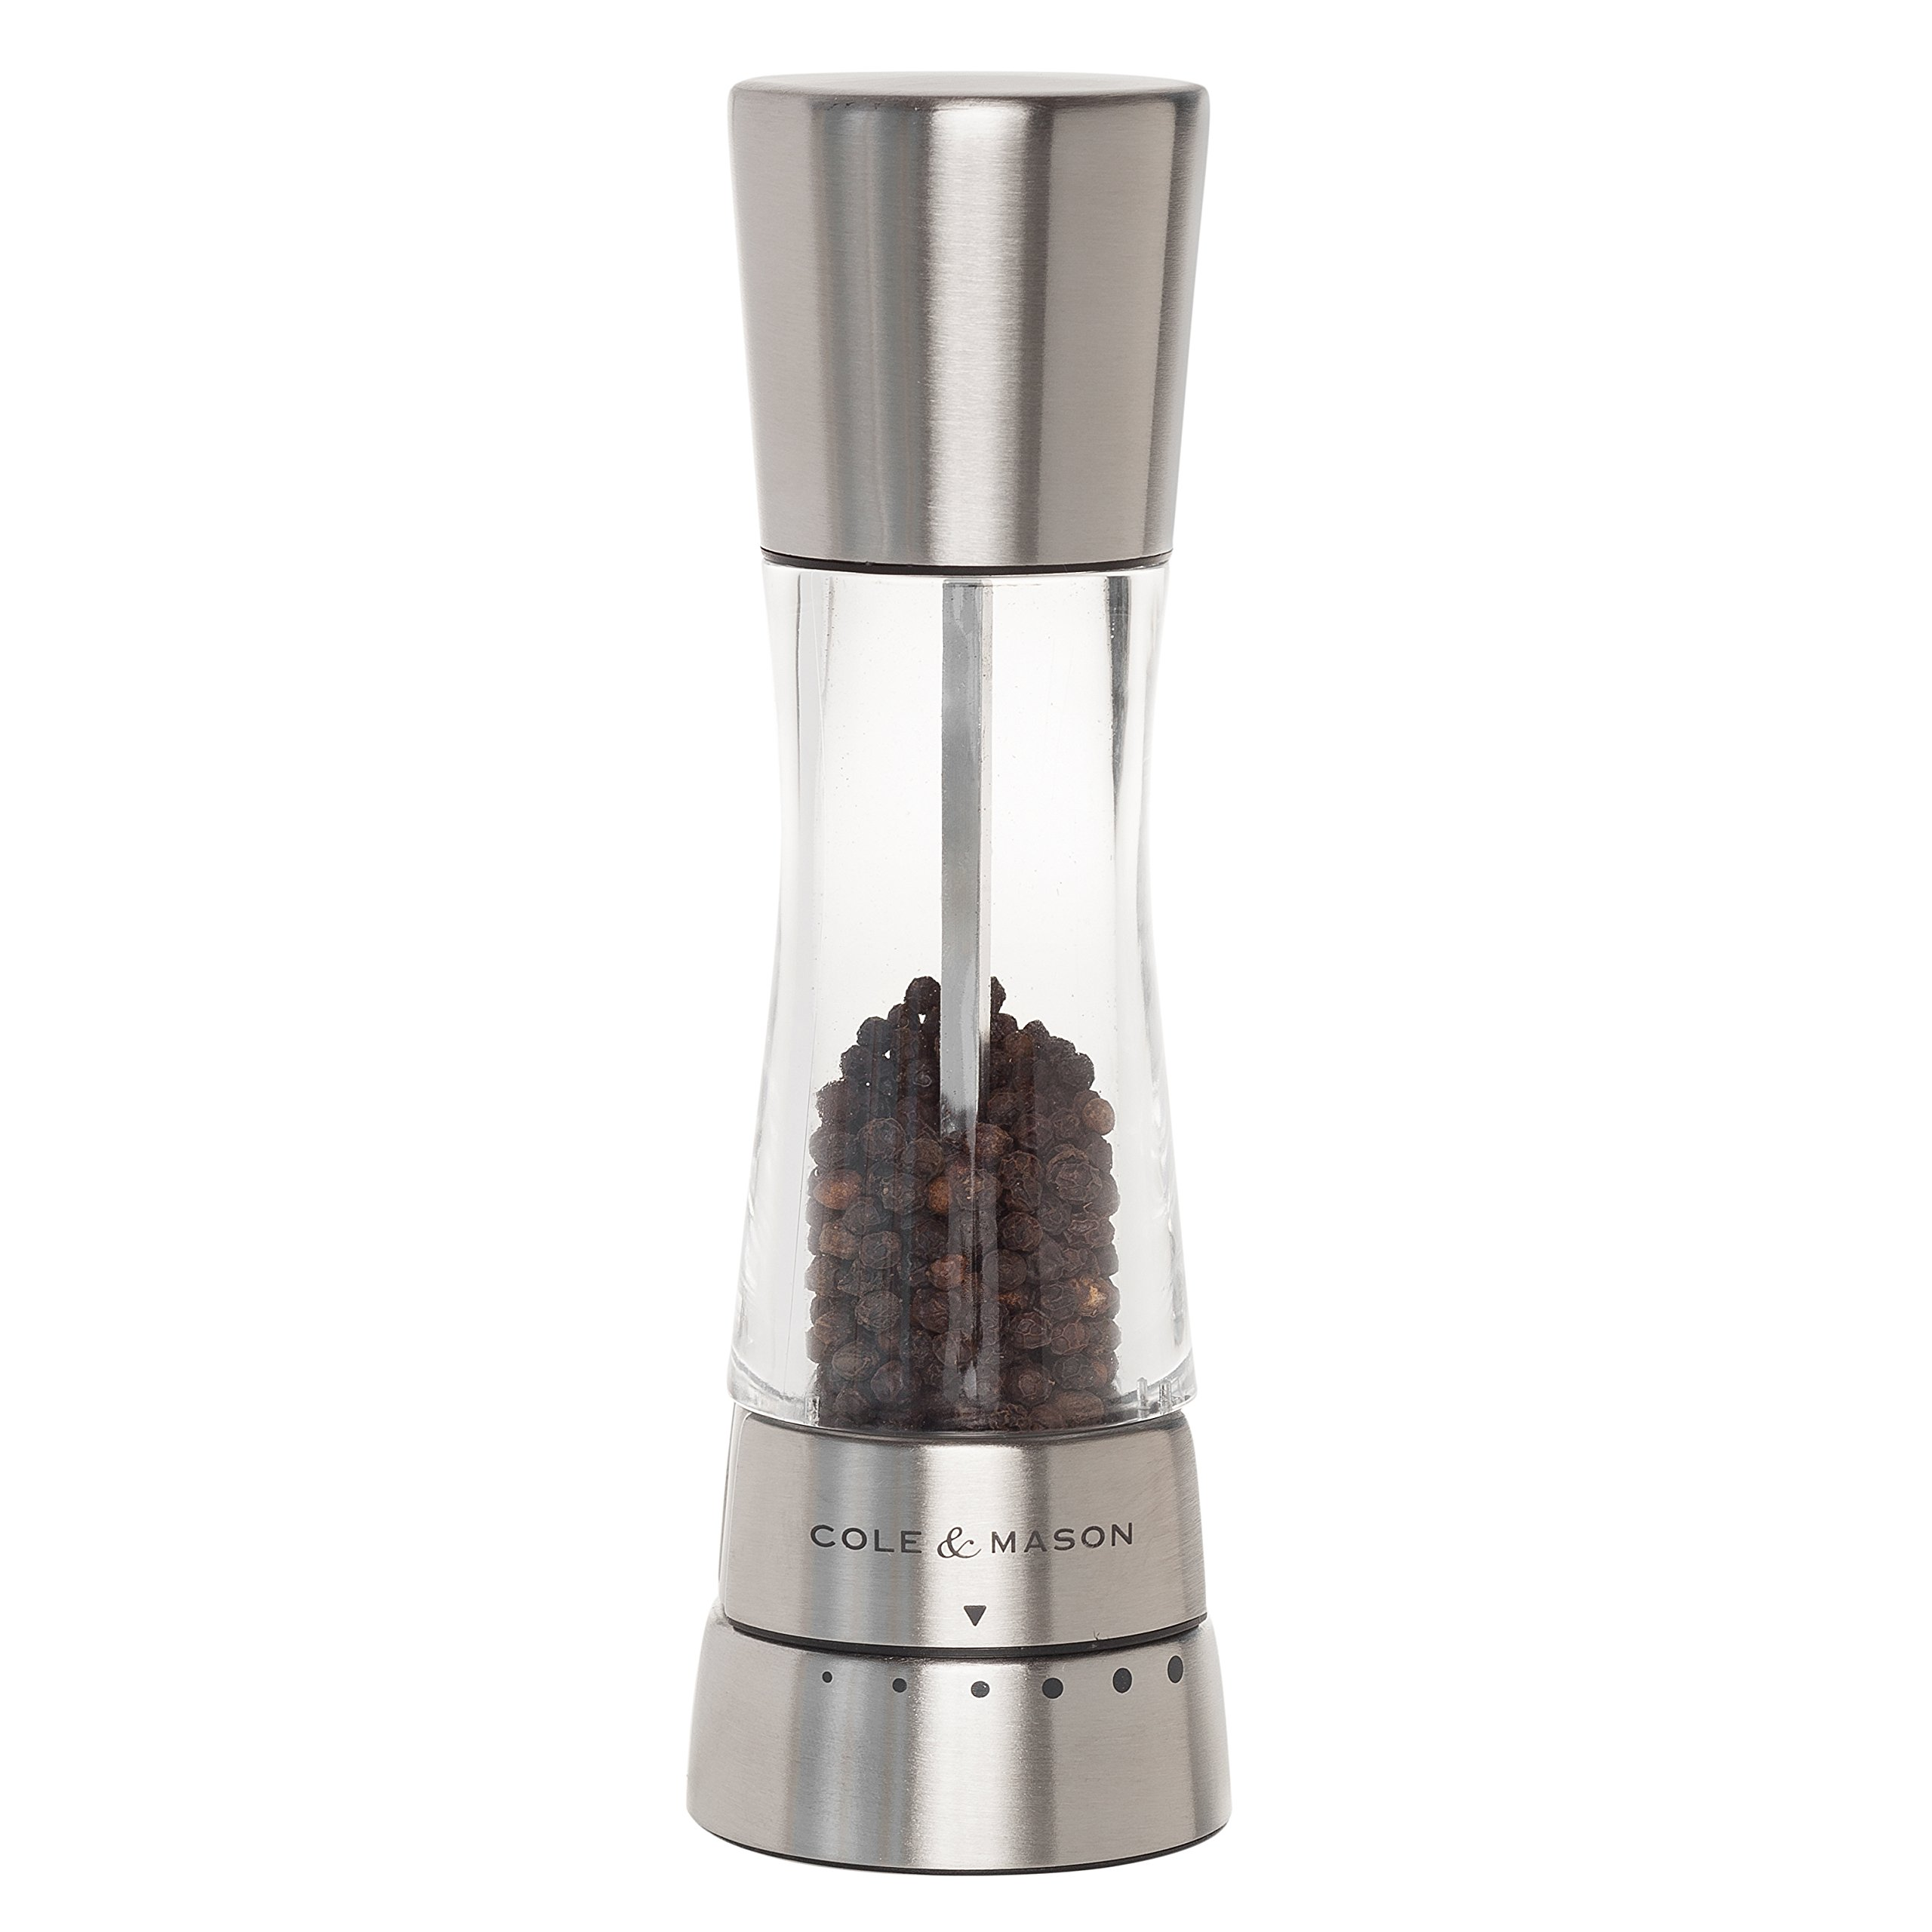 Cole & Mason H59401G Derwent Pepper Mill, Stainless Steel, Stainless Steel by Cole & Mason